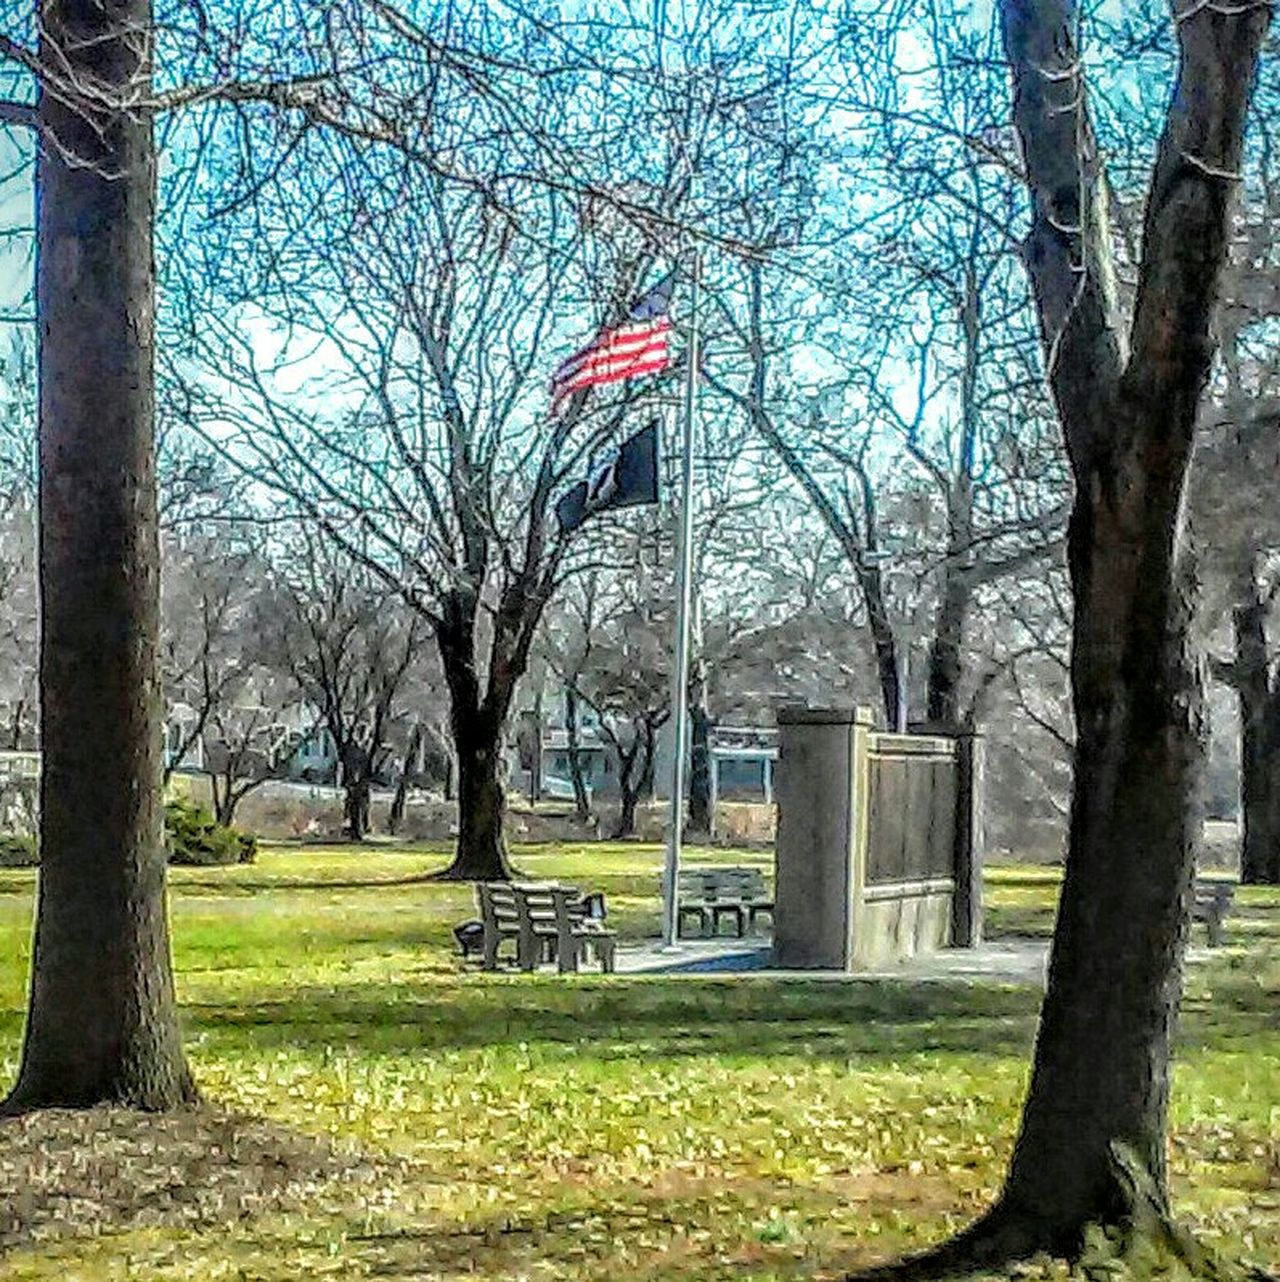 Hanging Out Taking Photos Flags WWII Memorial Manatawny Park Photos By Jeanette American Flag Trees Pottstown,pa Home Sweet Home Hometown Day OutMonument Respect Architecture Beautiful Day Urban Spring Fever Learn & Shoot: Balancing Elements Here Belongs To Me Long Goodbye